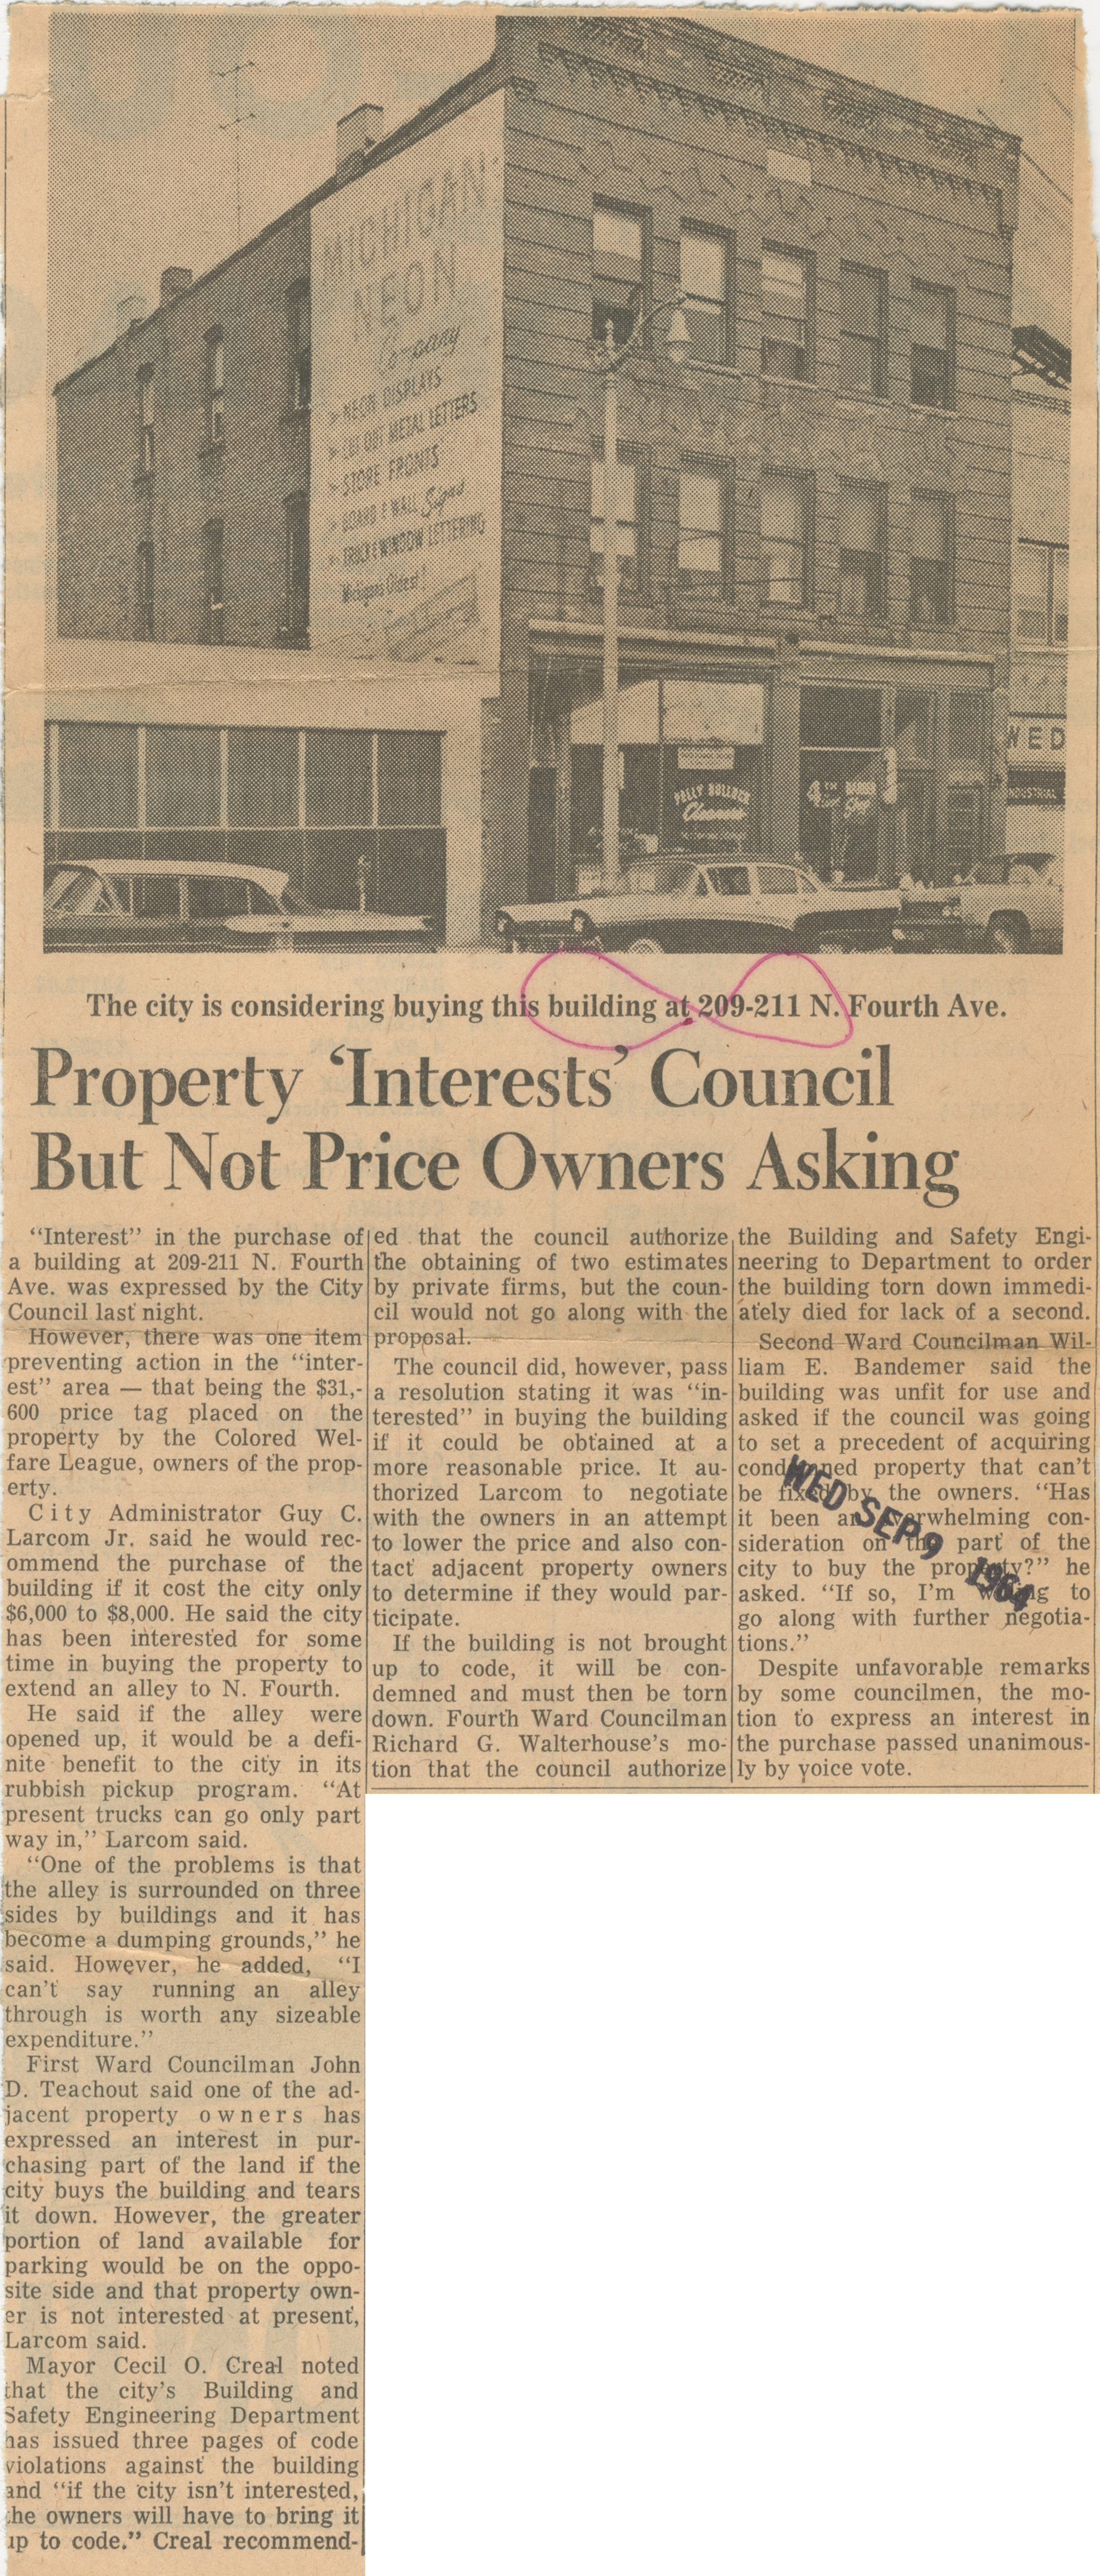 Property 'Interests' Council But Not Price Owners Asking image